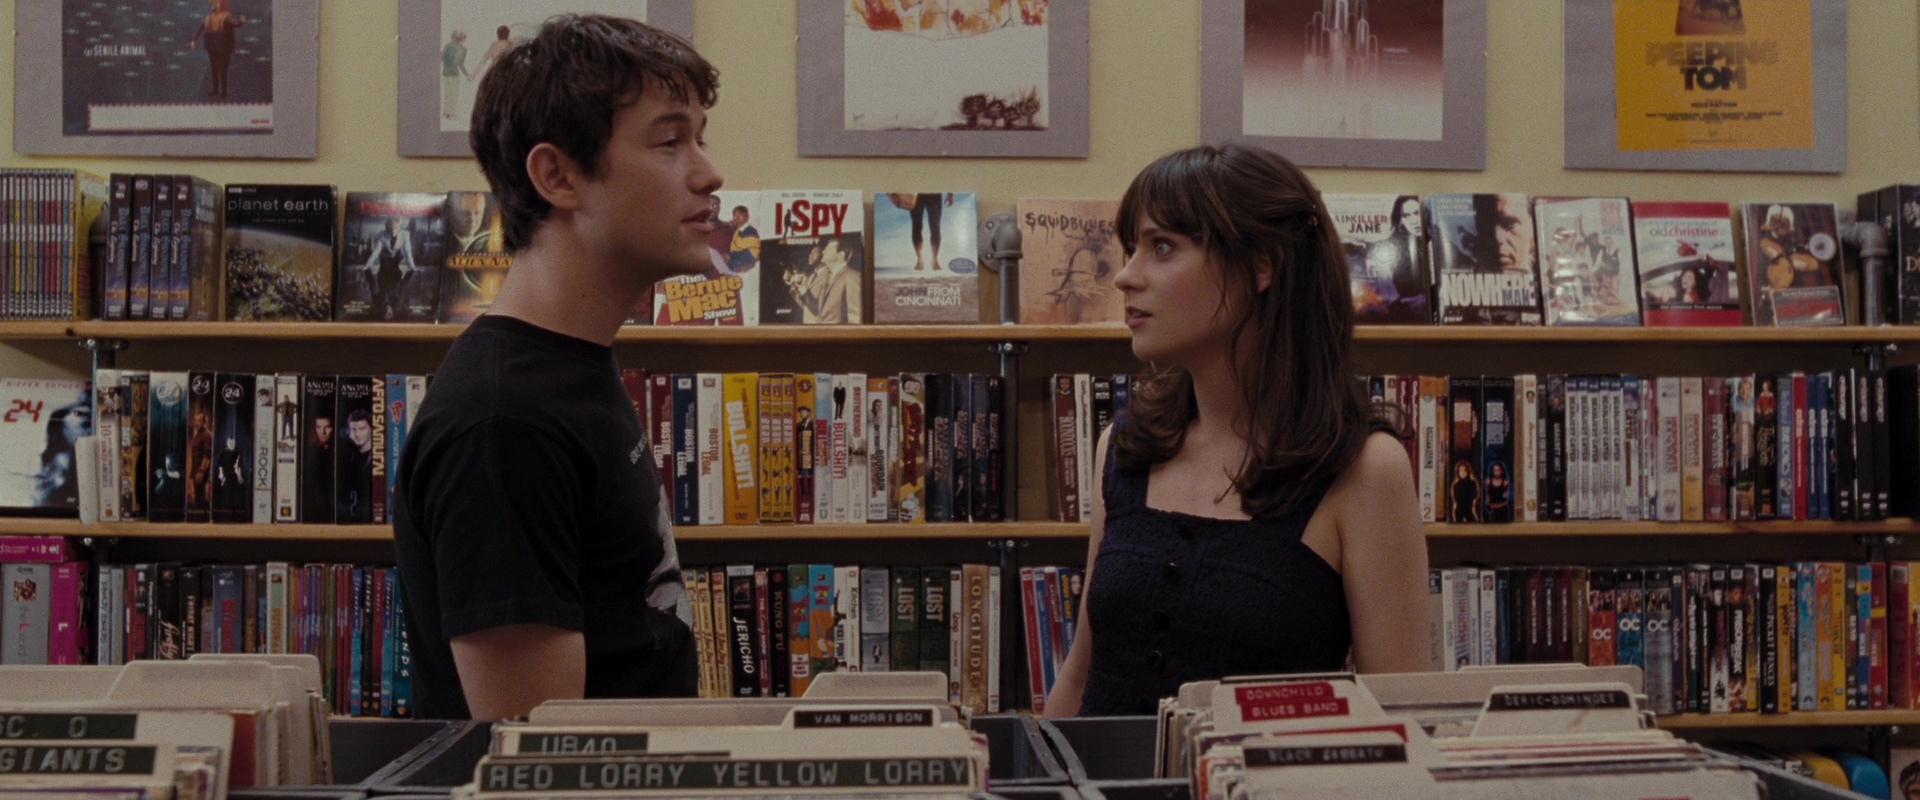 (500) Days of Summer film still 1